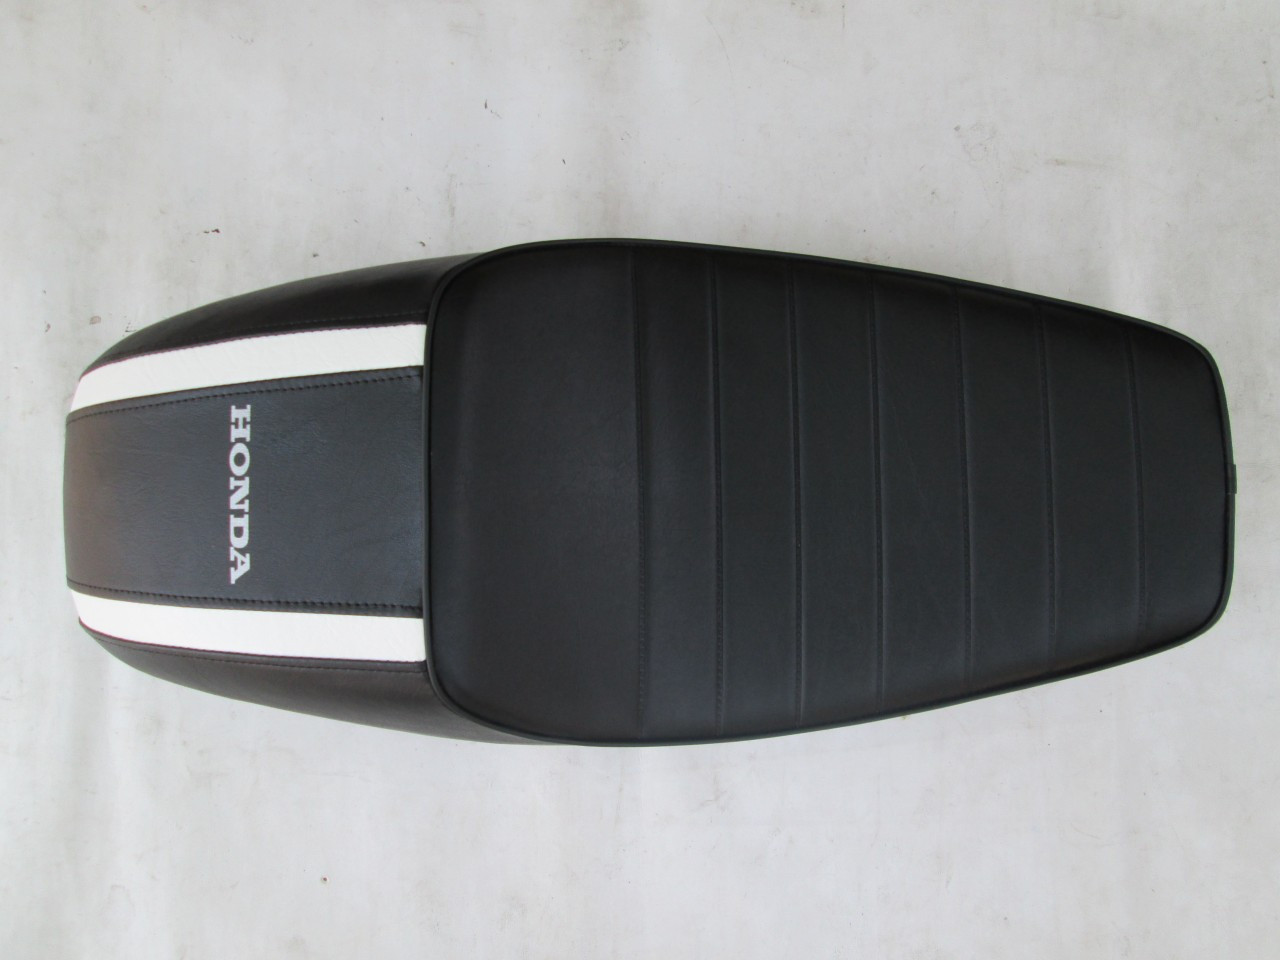 1979 - 1982 Honda CX500 Custom Cafe Racer Complete Motorcycle Seat #4136